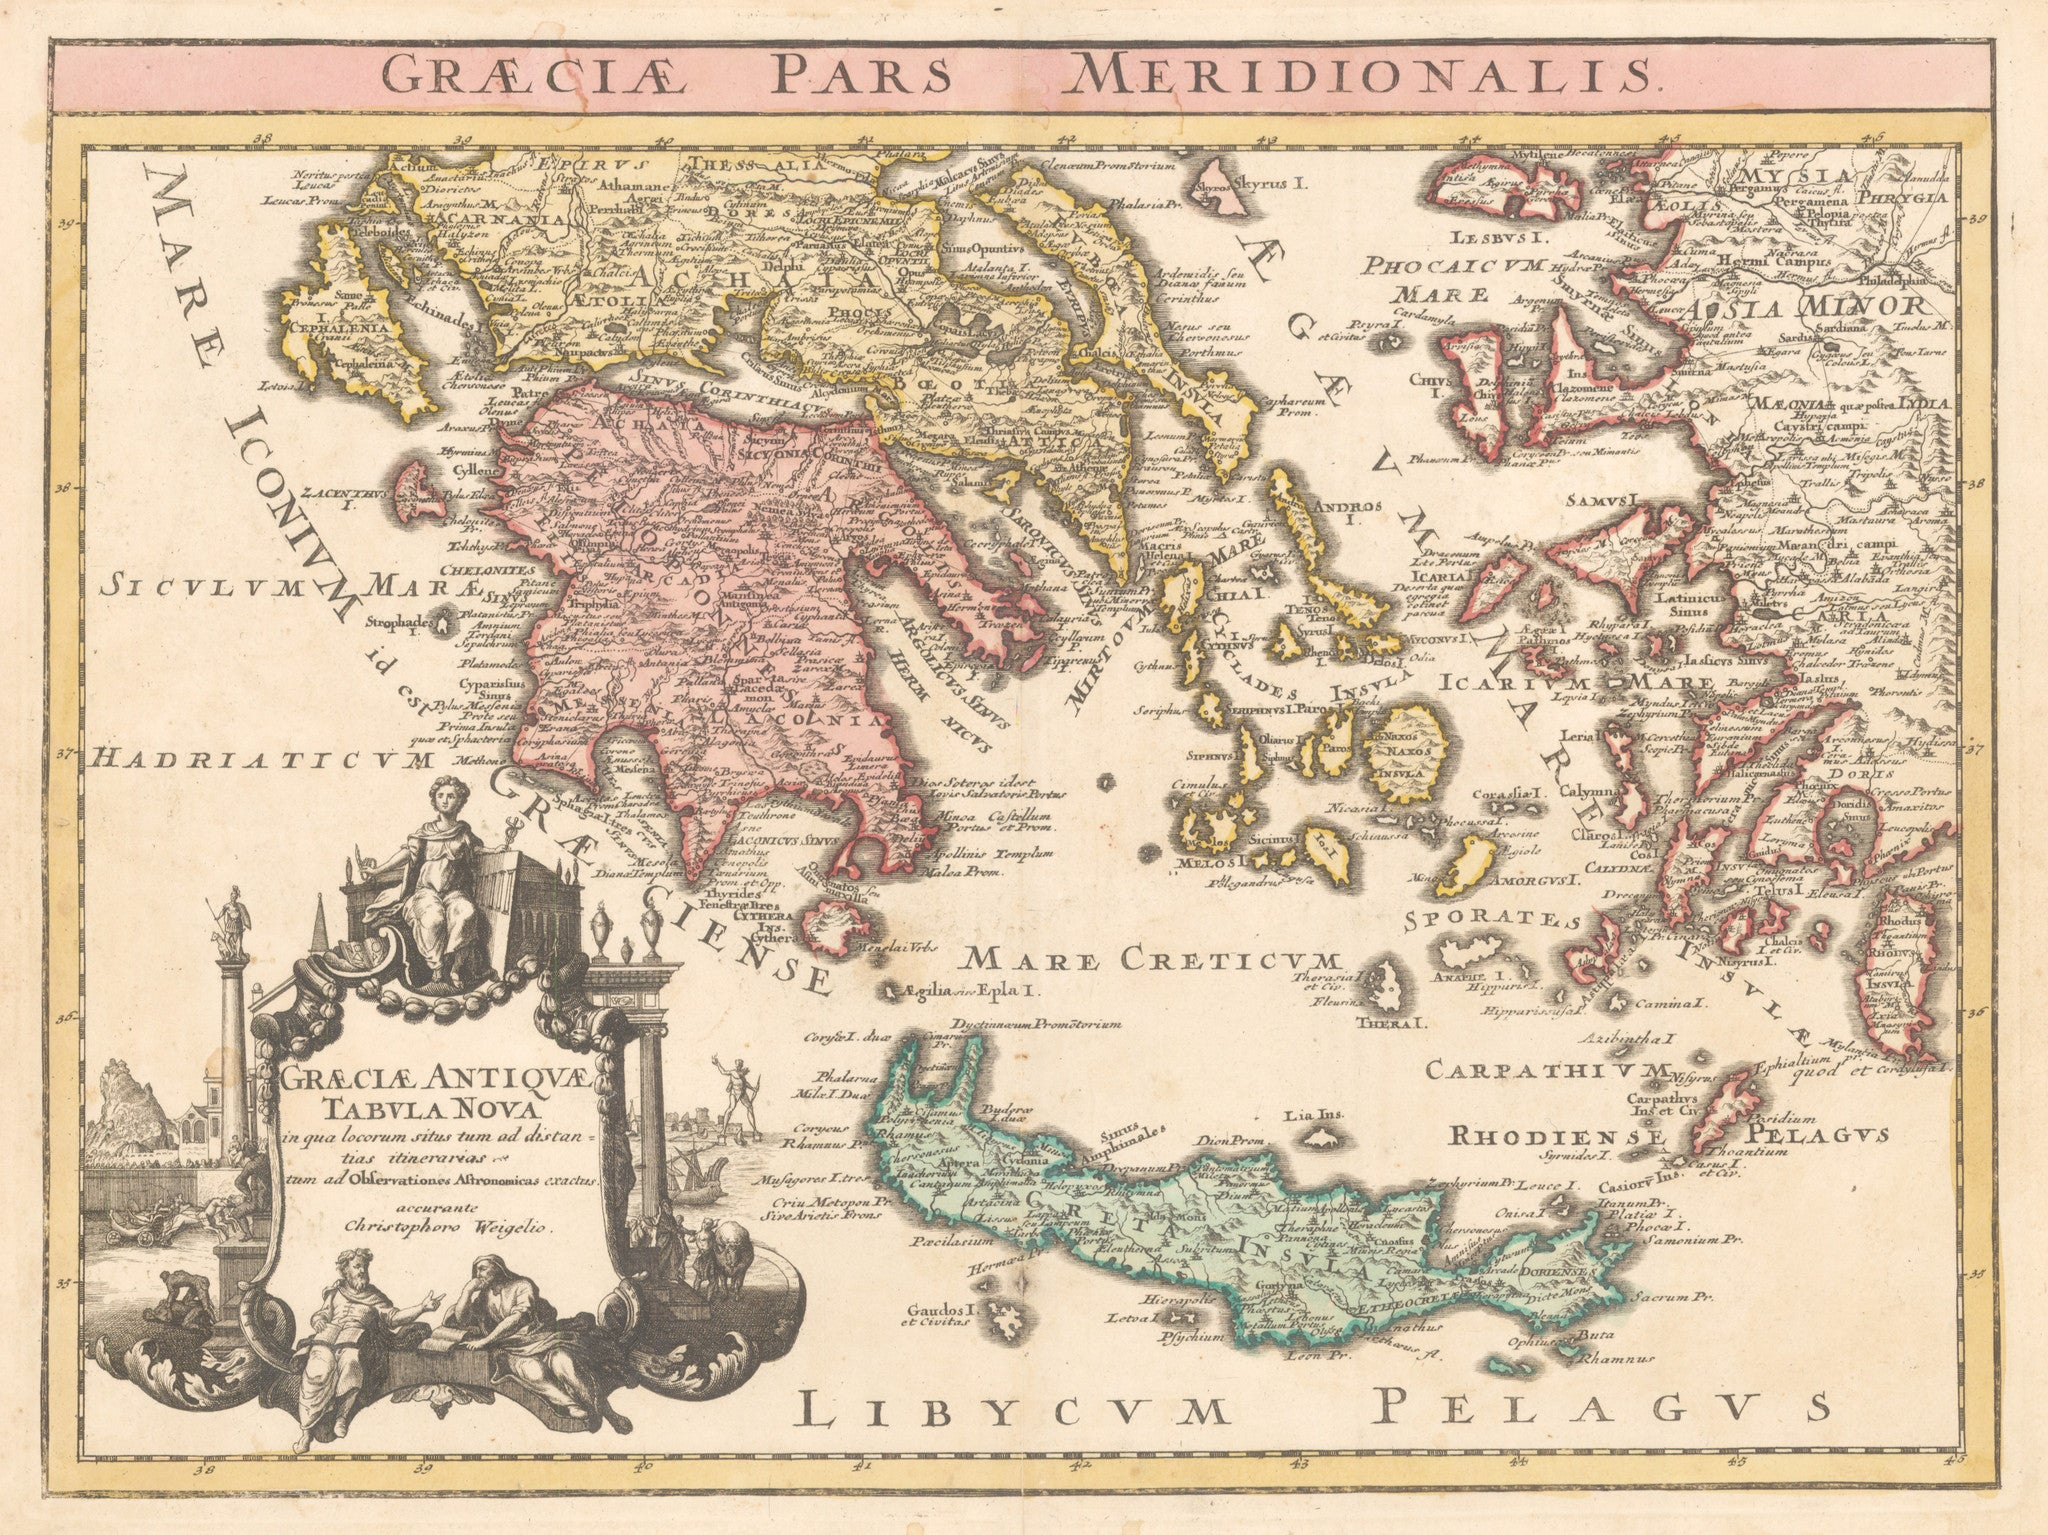 Graecie Pars Meridionalis By: Weigel Date: 1720 (published) Nuremberg Size: 12 x 16.25 inches - Antique, Vintage, Greece, Crete, Turkey, Weigel, 1720